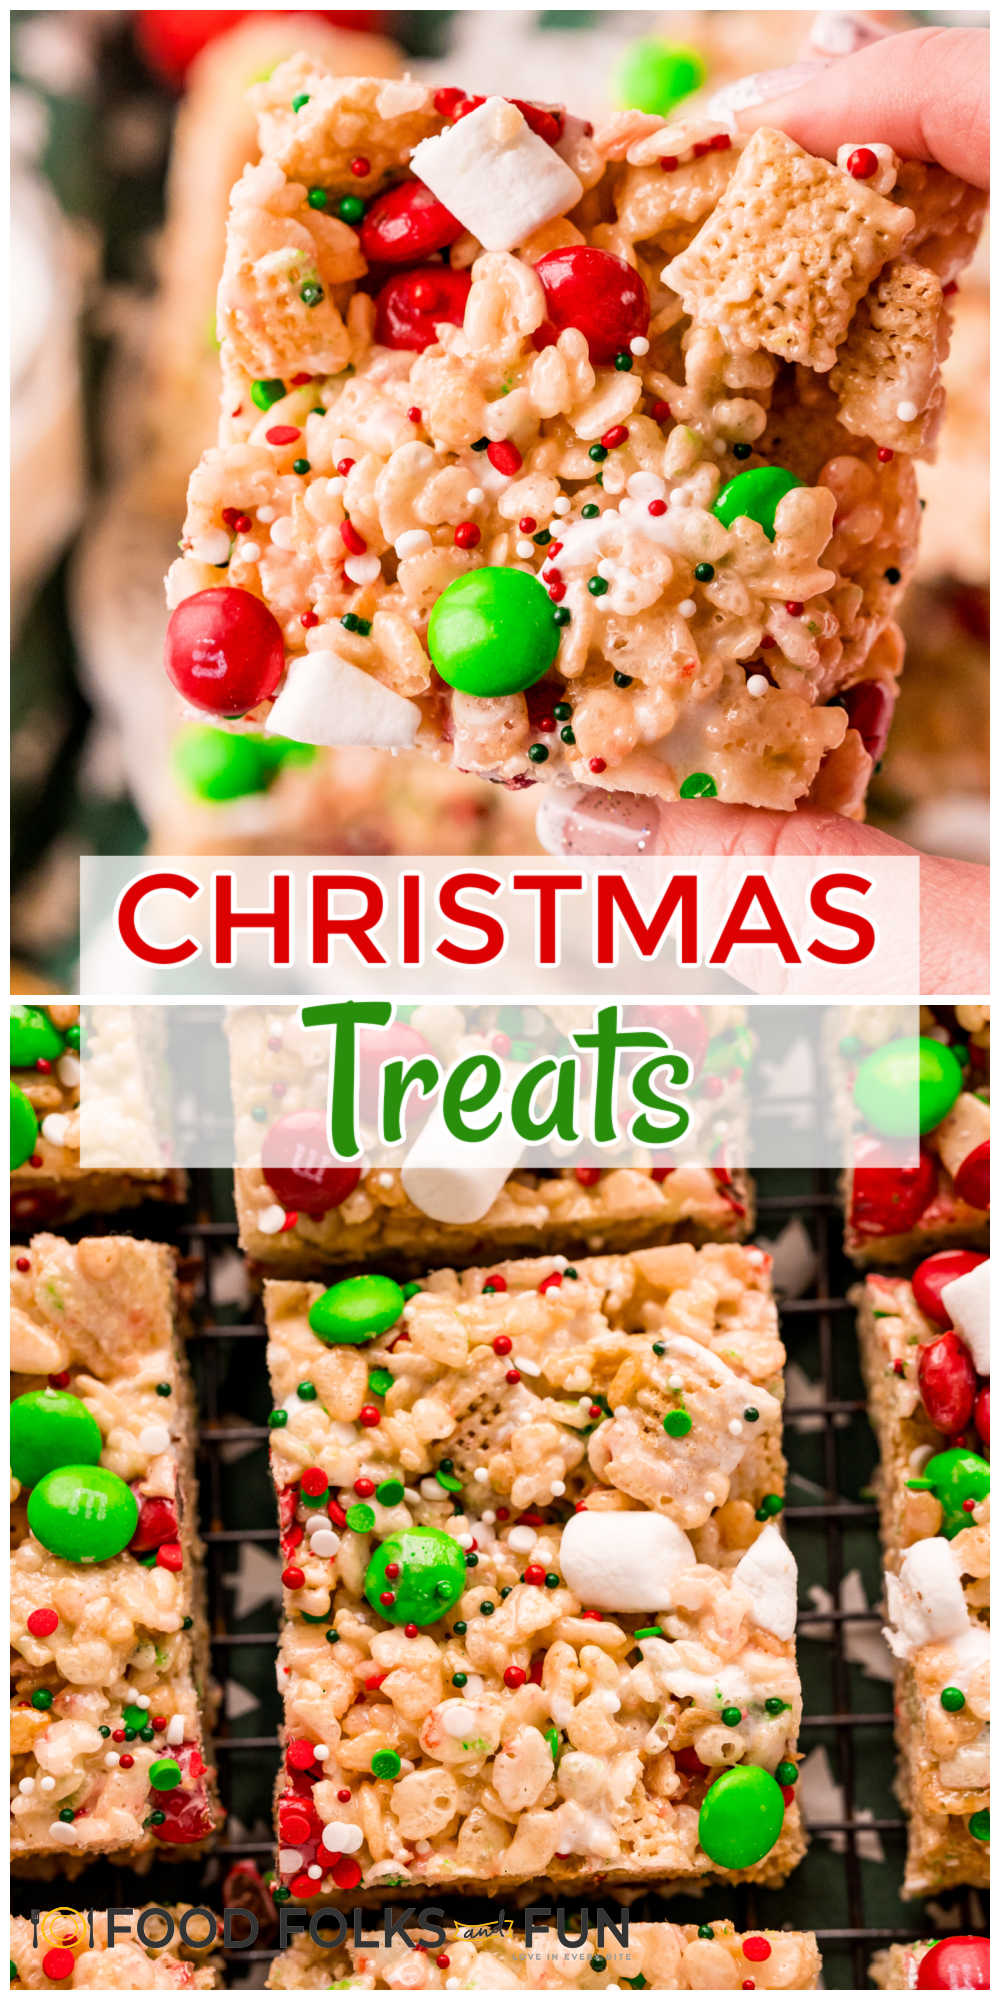 These Christmas Rice Krispie Treats are easy Christmas treats that kids will love. They're loaded with M&Ms, sprinkles, and mini marshmallows. via @foodfolksandfun